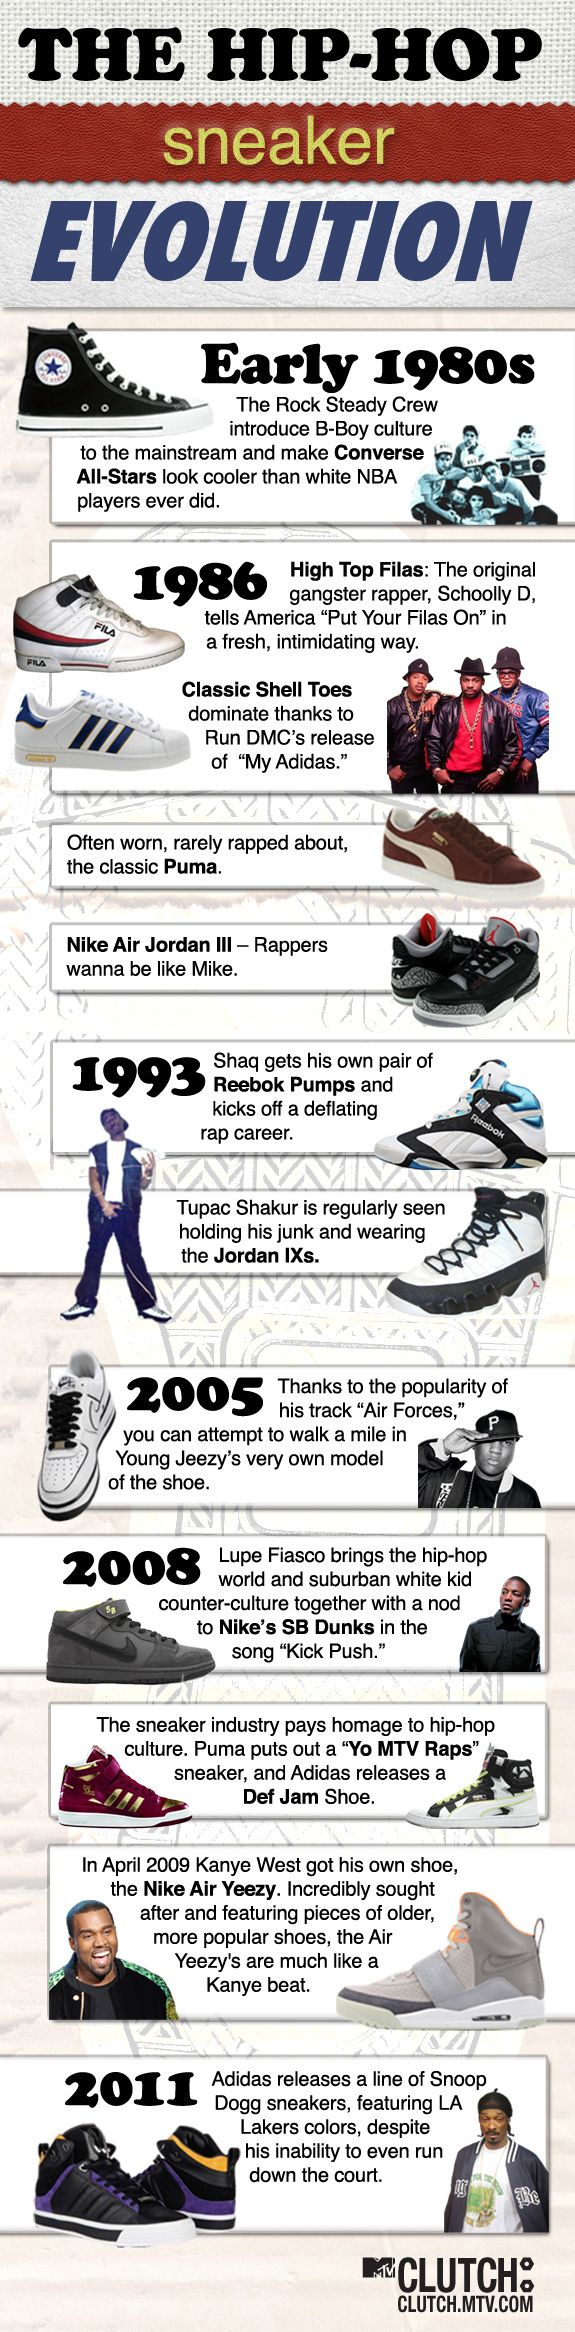 The Hip Hop Culture and Its Influence in Sneakers Evolution - For all the sneaker freaks out there.